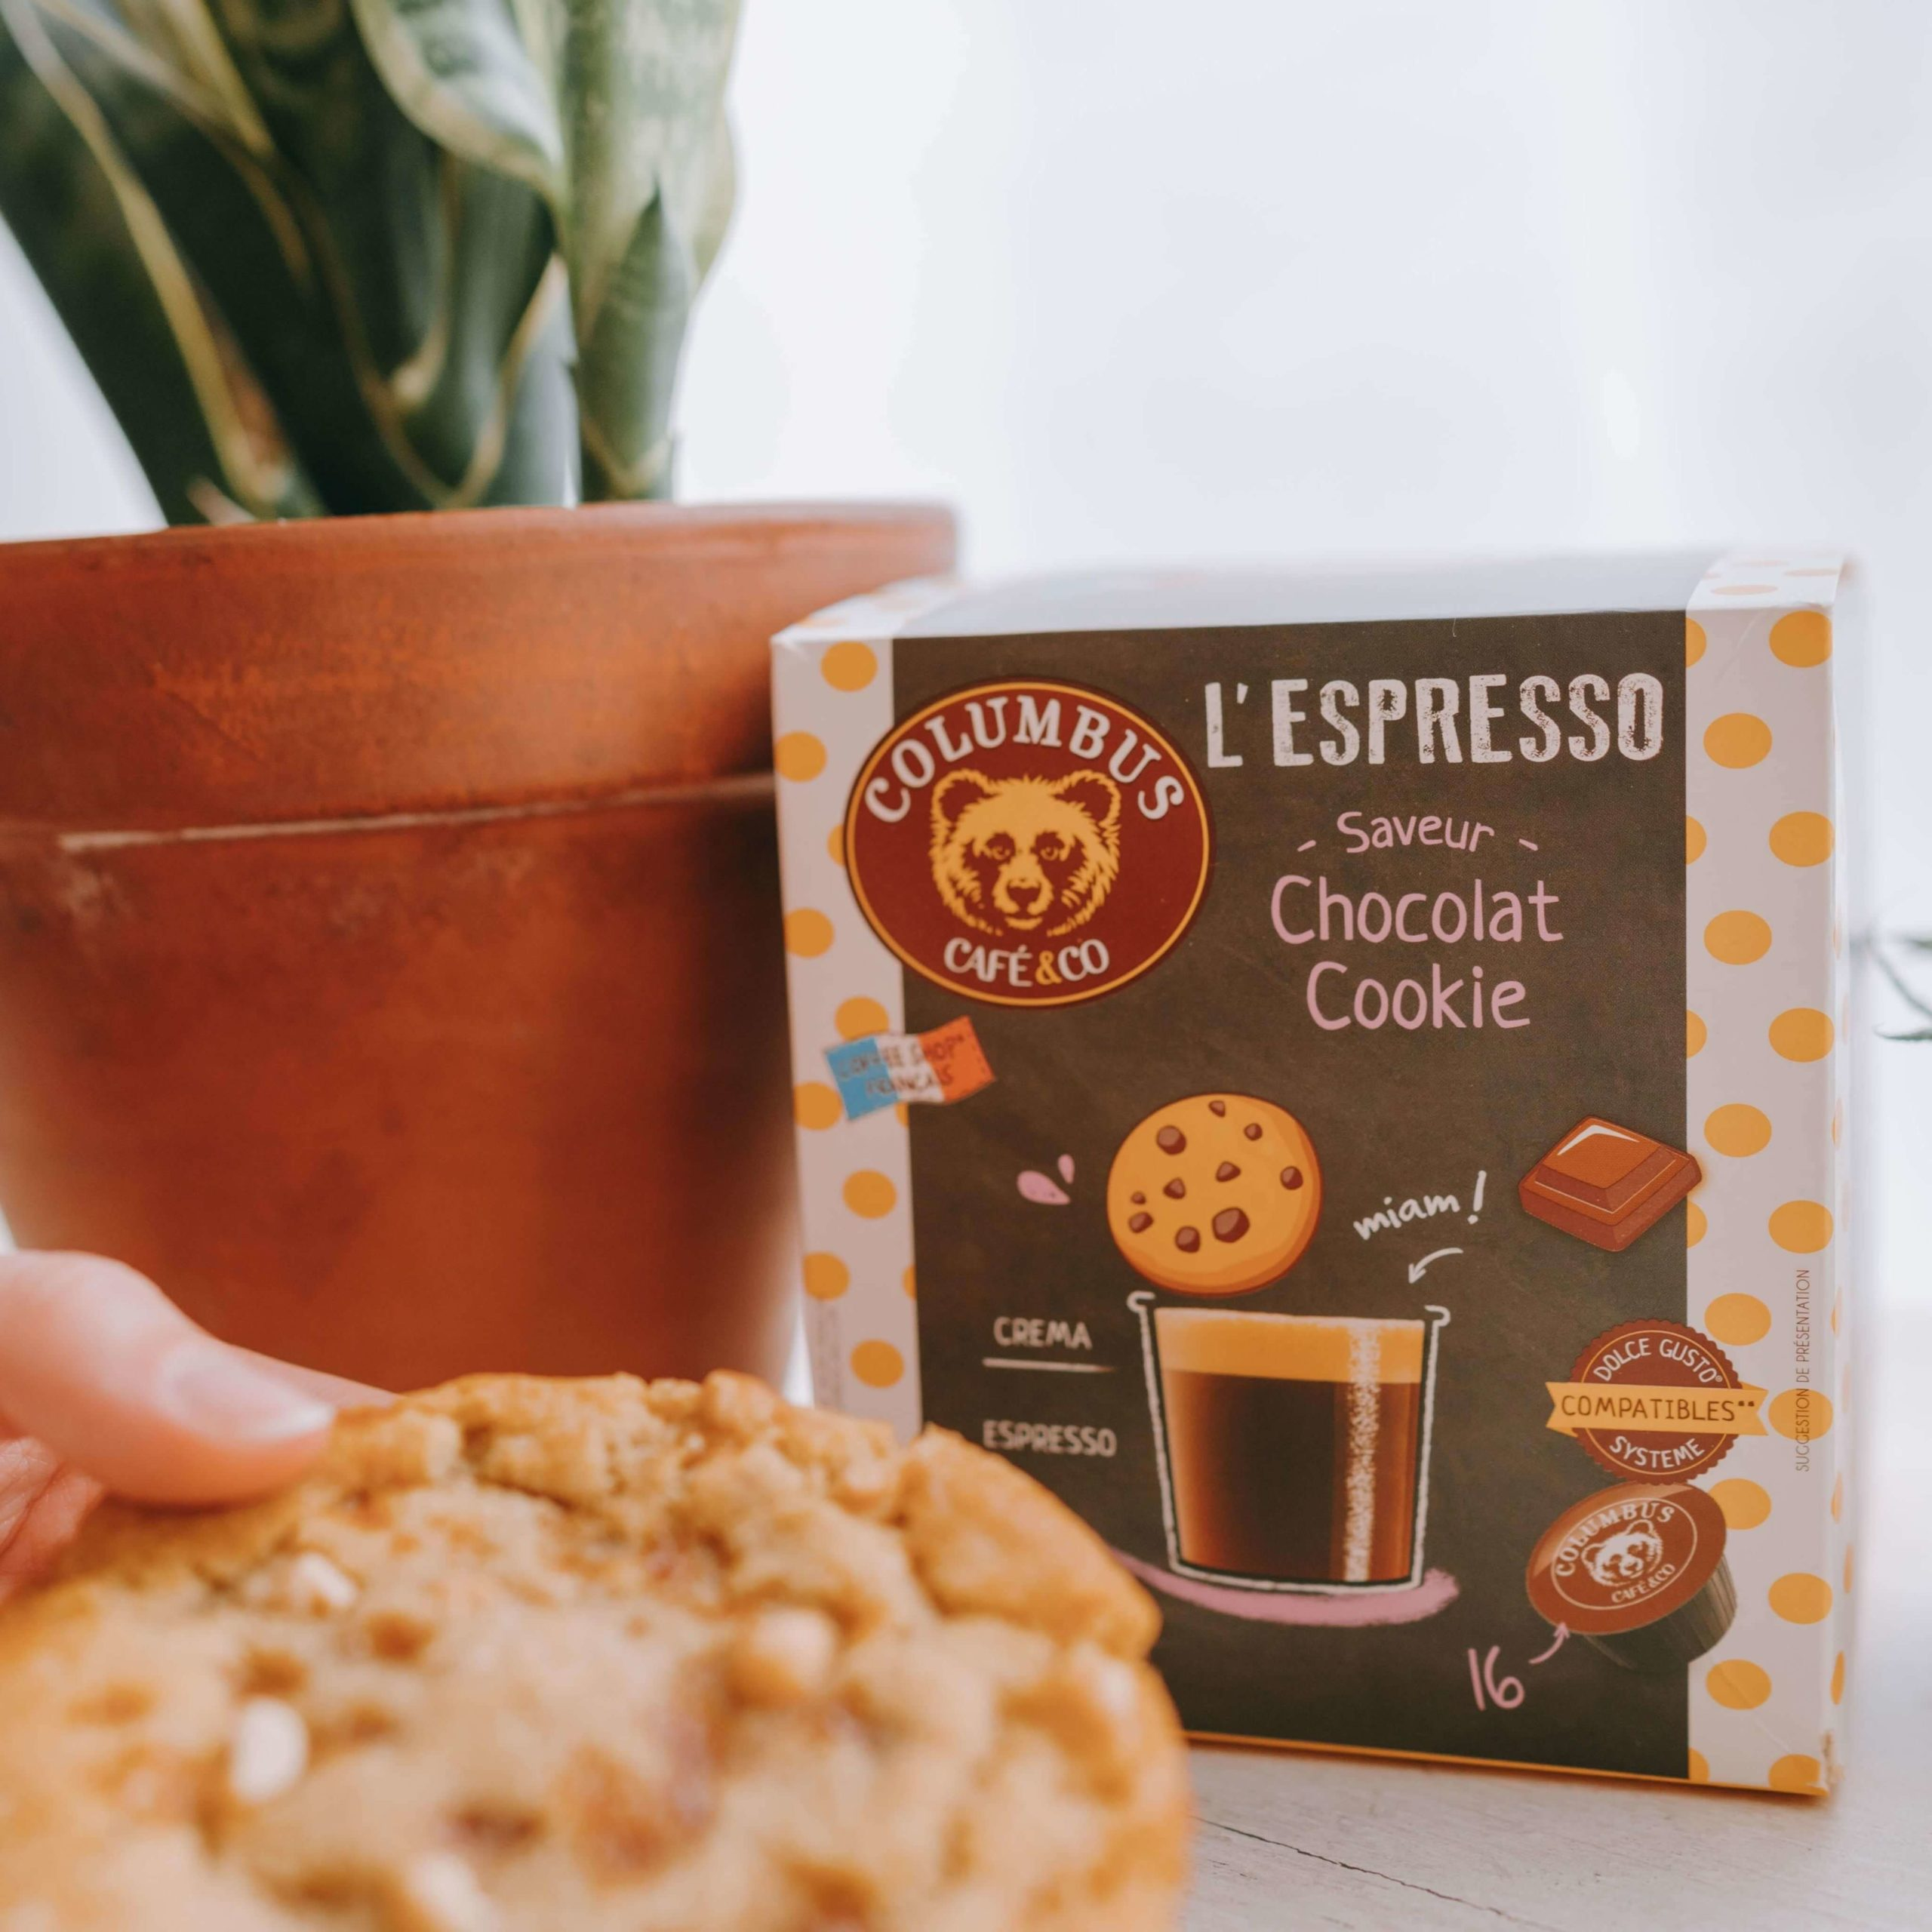 L'Espresso saveur Chocolat Cookie Dolce Gusto® x 16